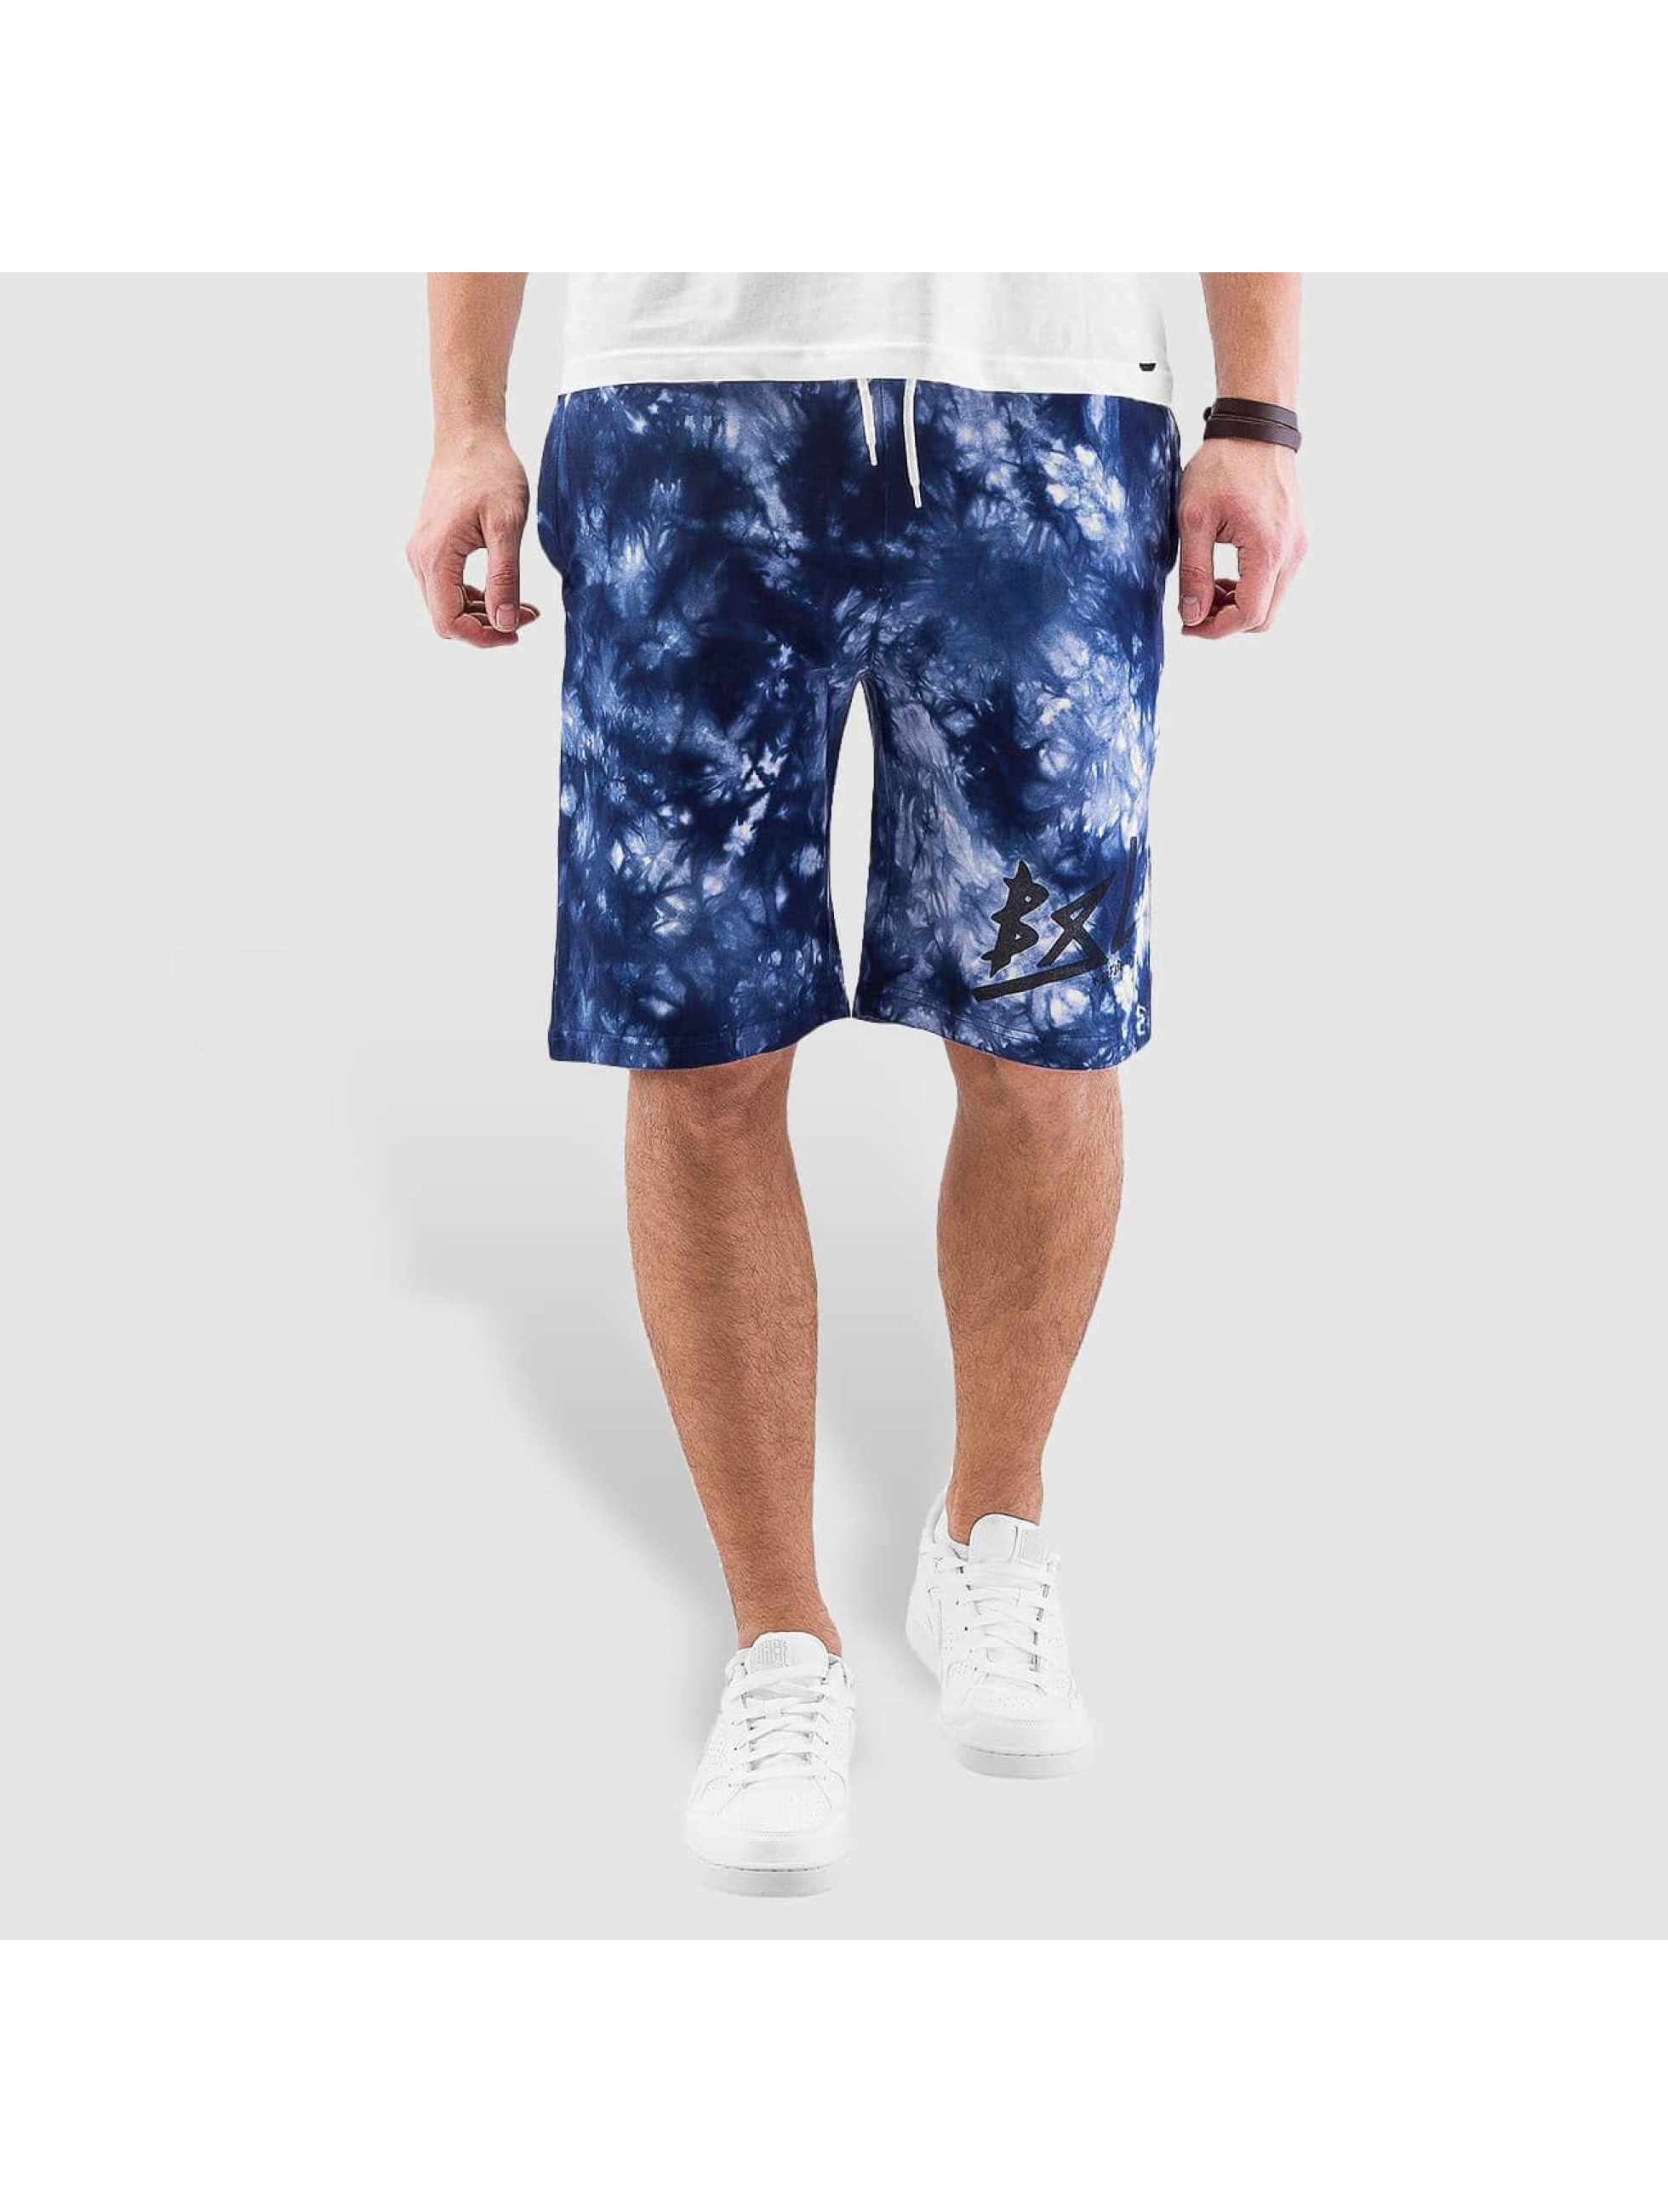 Grimey Wear Shorts y Beigns Tie Dye blau